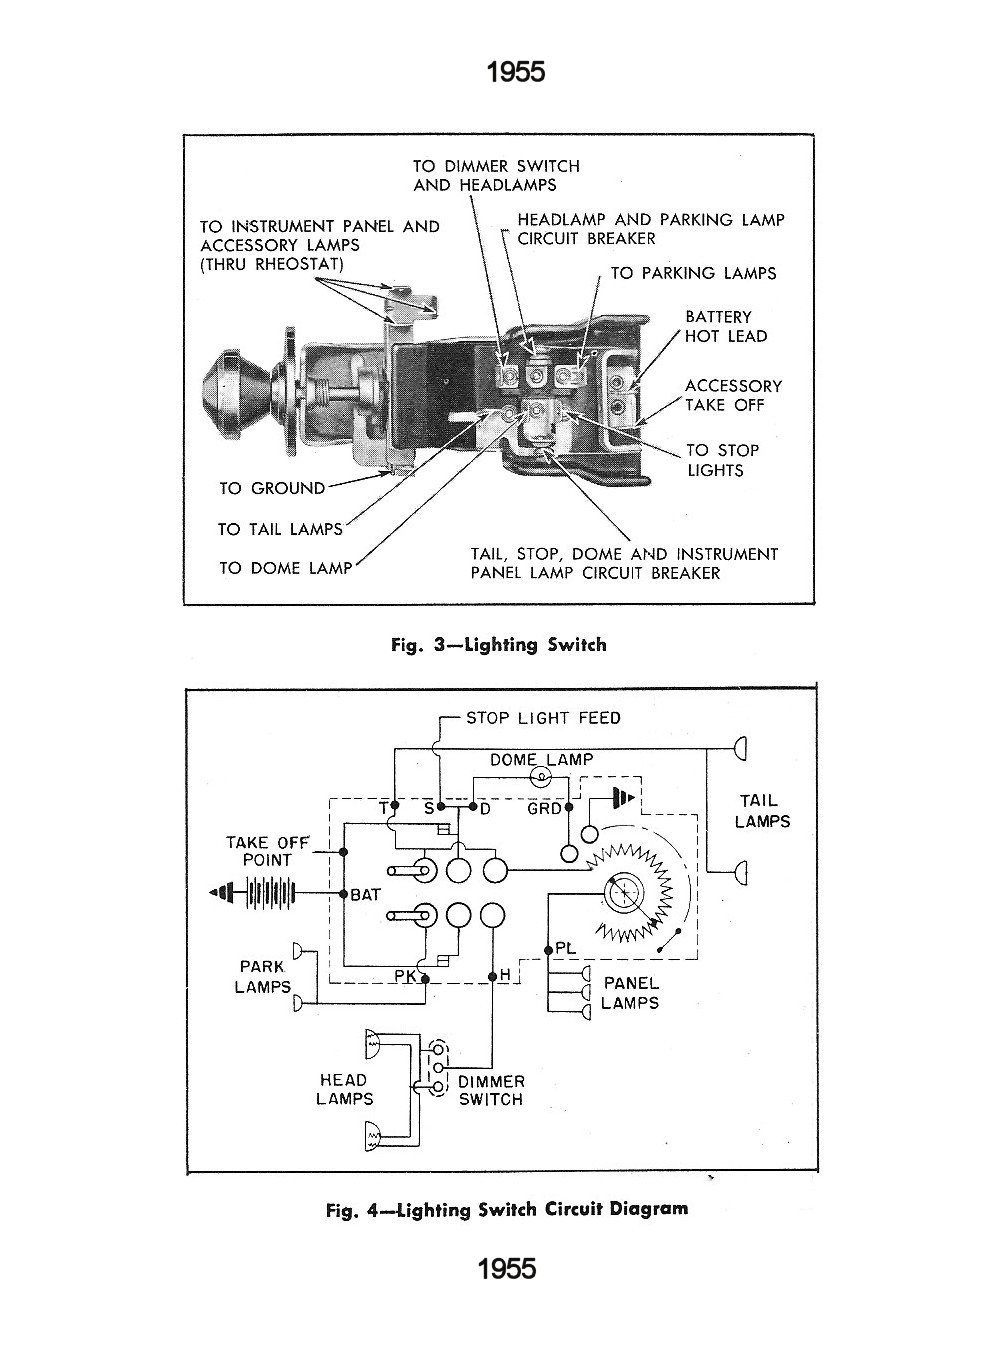 55csm1204a wiring diagram headlight switch 55 chevrolet readingrat net wiring diagram for headlight switch at edmiracle.co